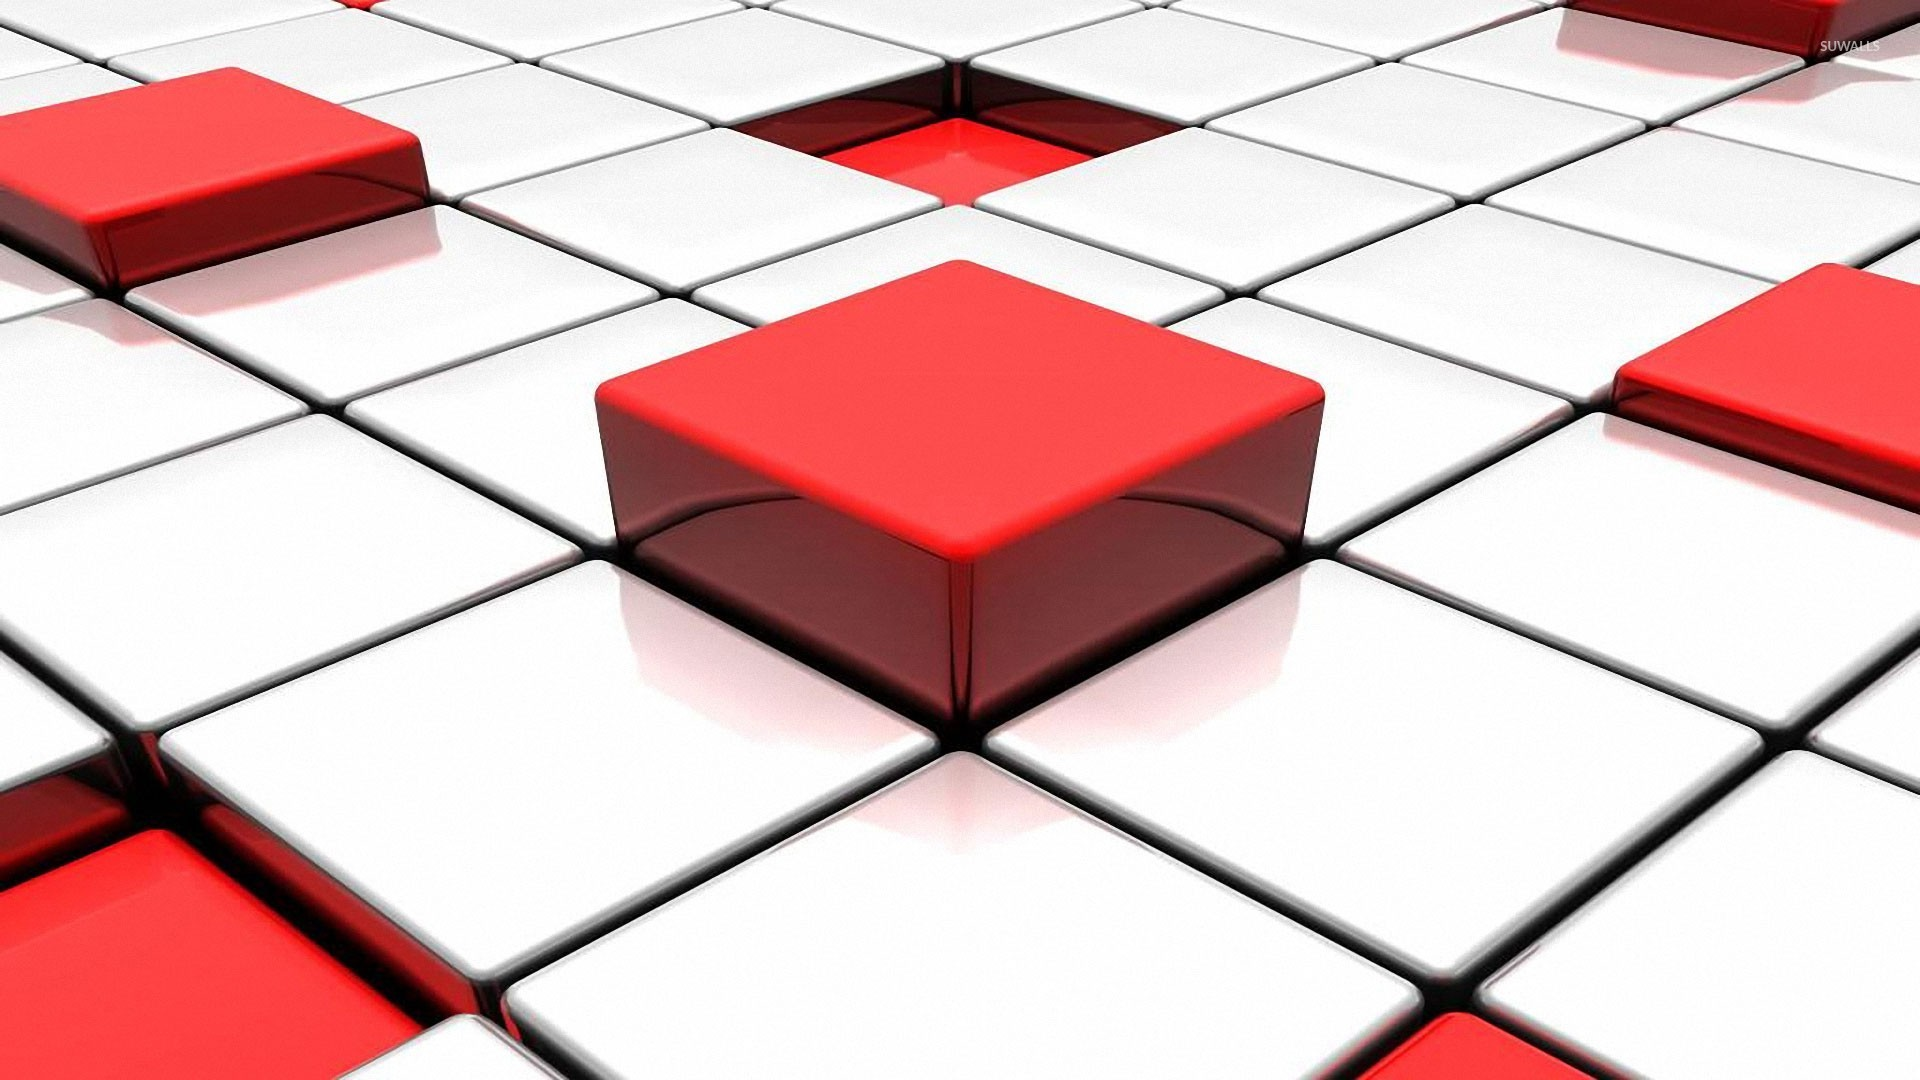 Red And White Cubes Wallpaper 3d Wallpapers 25335